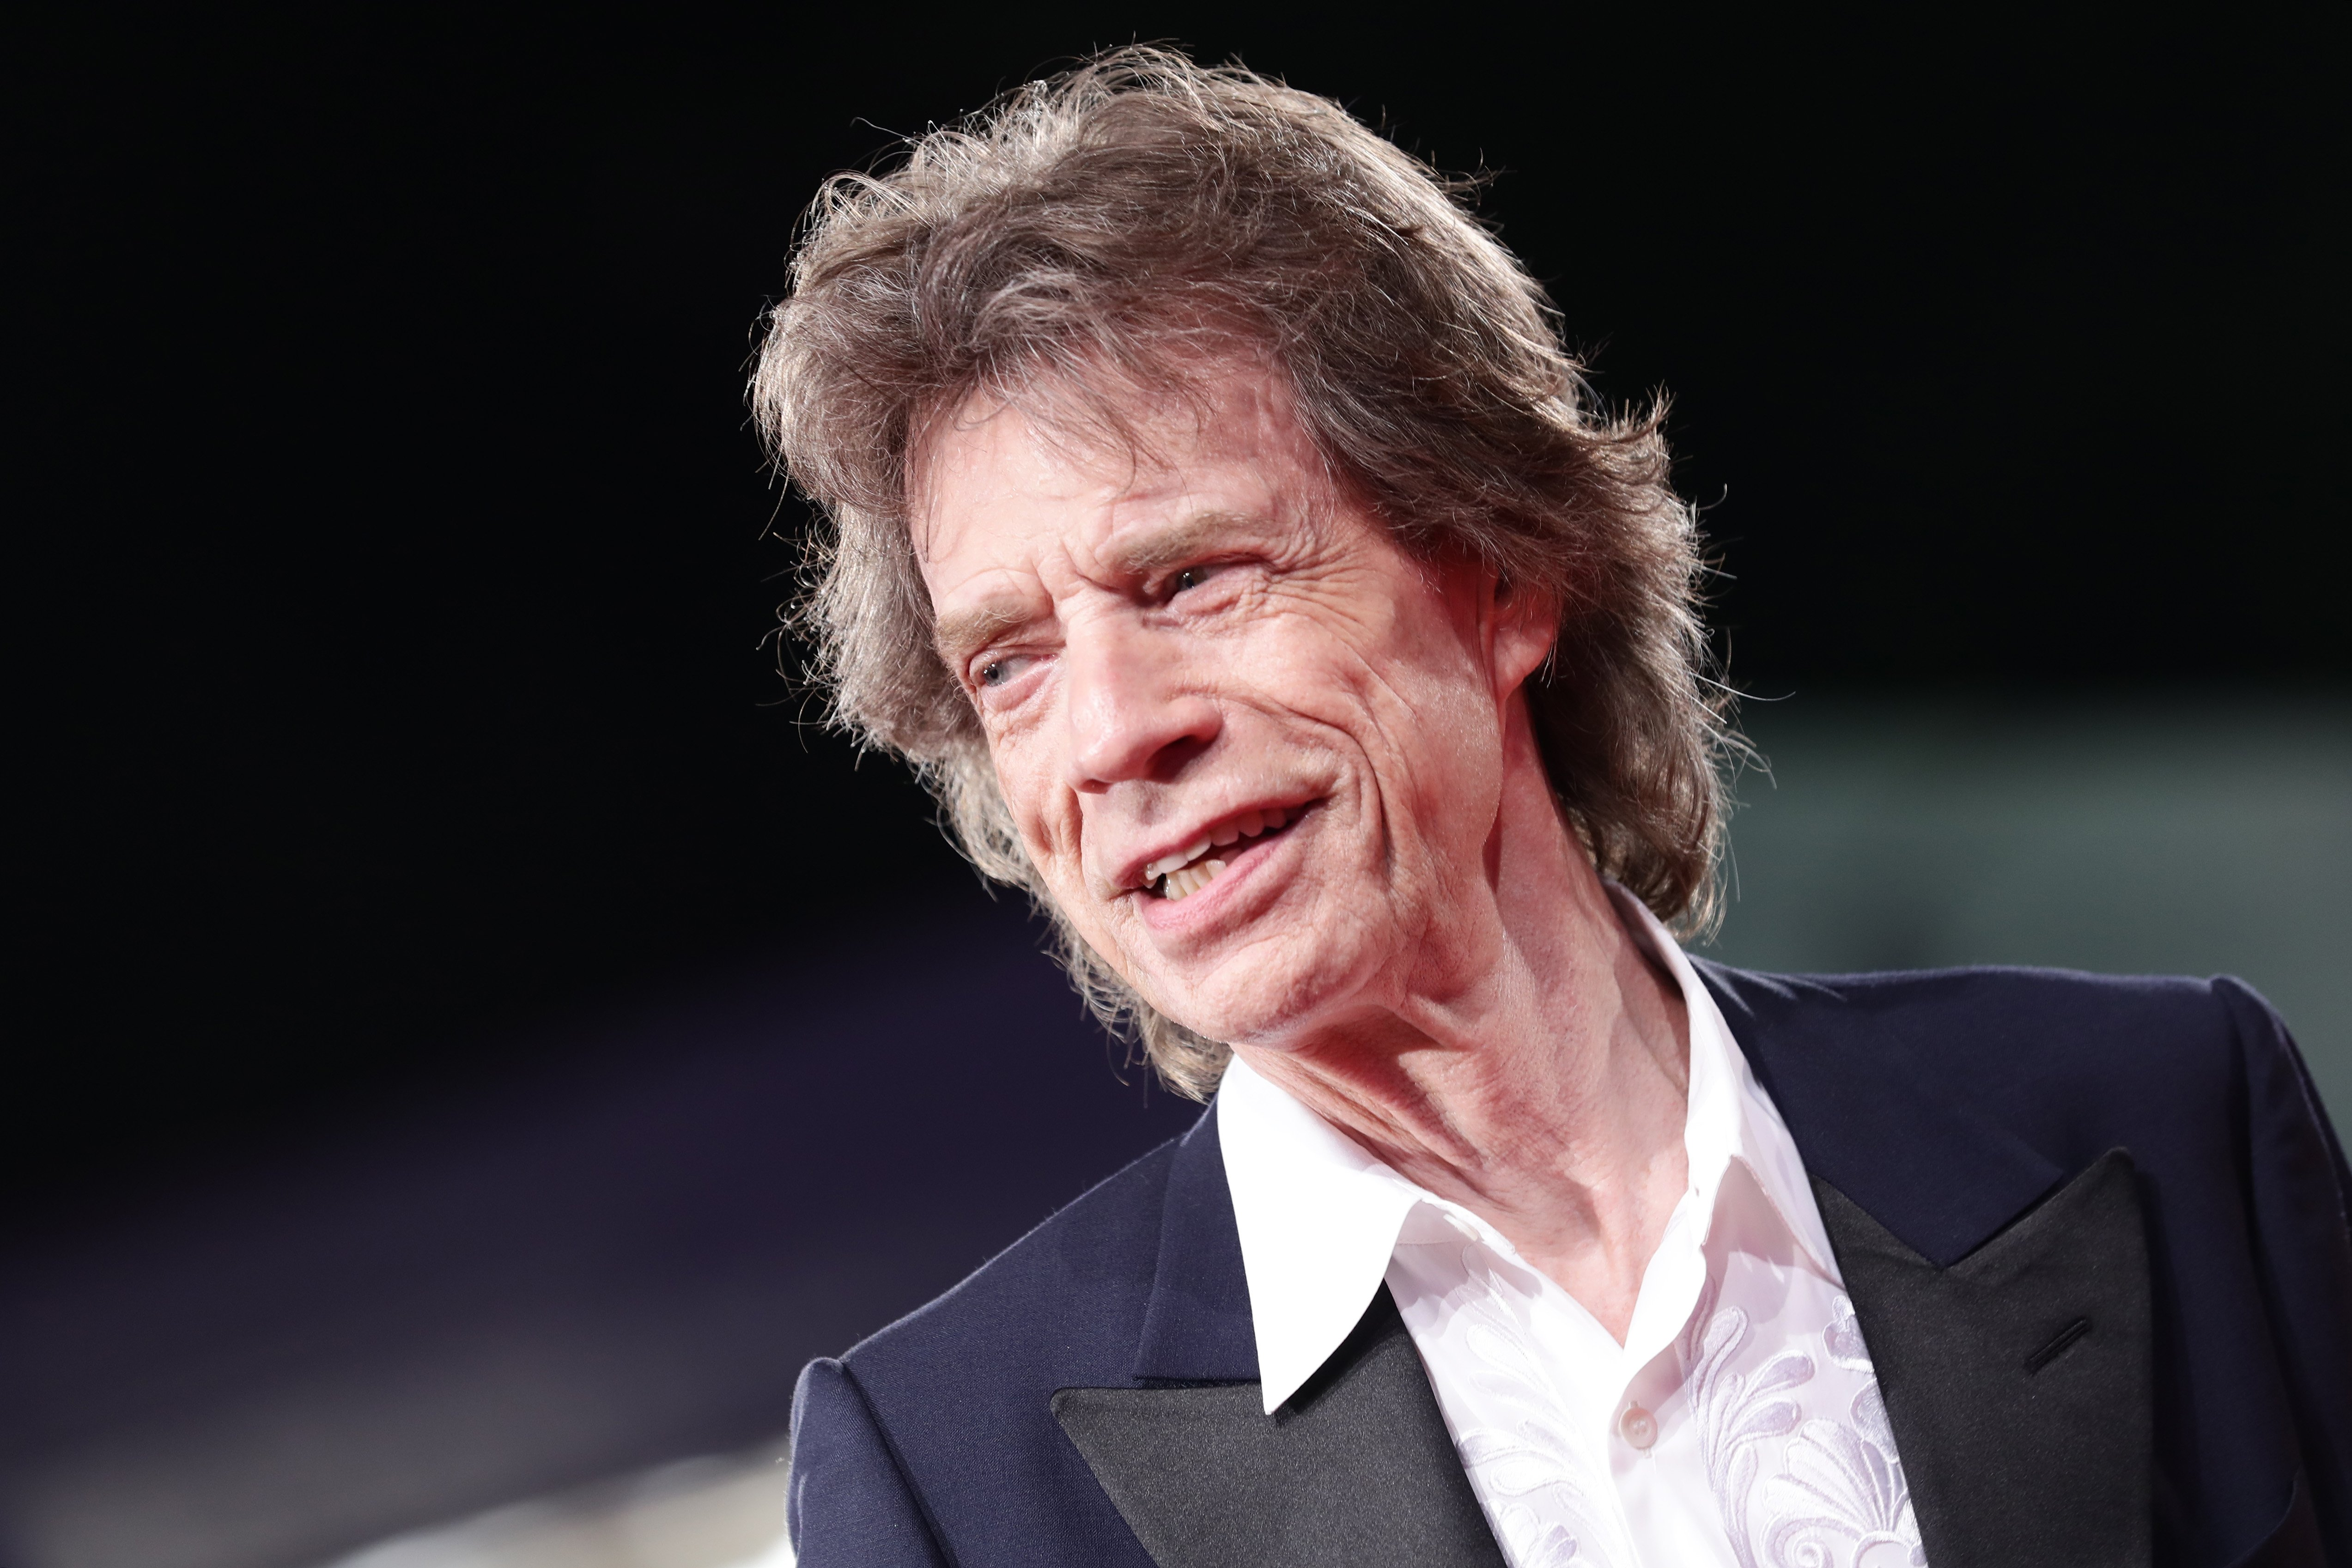 Mick Jagger at the 76th Venice Film Festival at Sala Grande on September 07, 2019 in Venice, Italy. | Photo: Getty Images